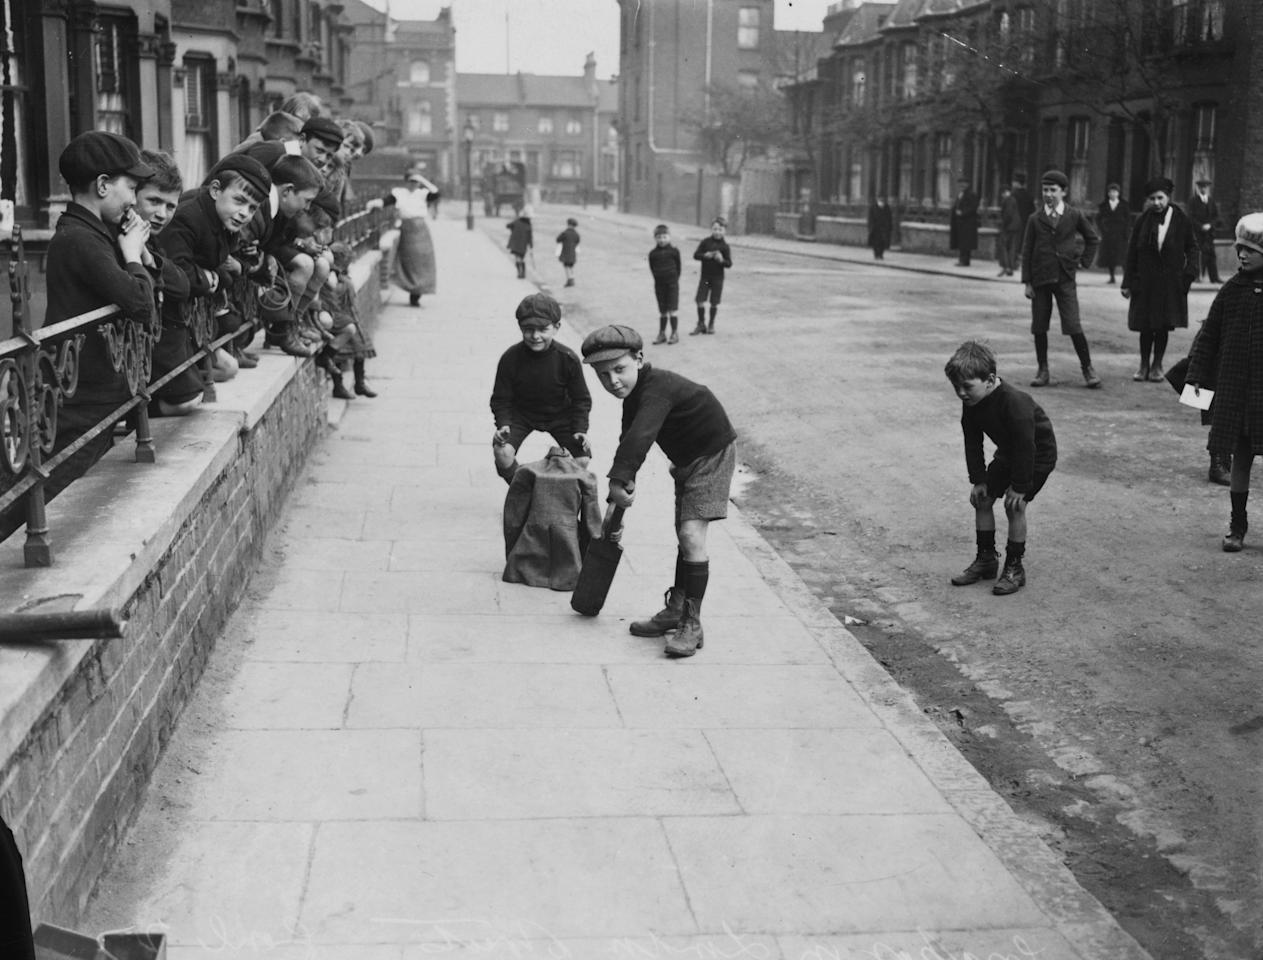 6th March 1926:  Young boys playing cricket in a London street.  (Photo by Central Press/Getty Images)